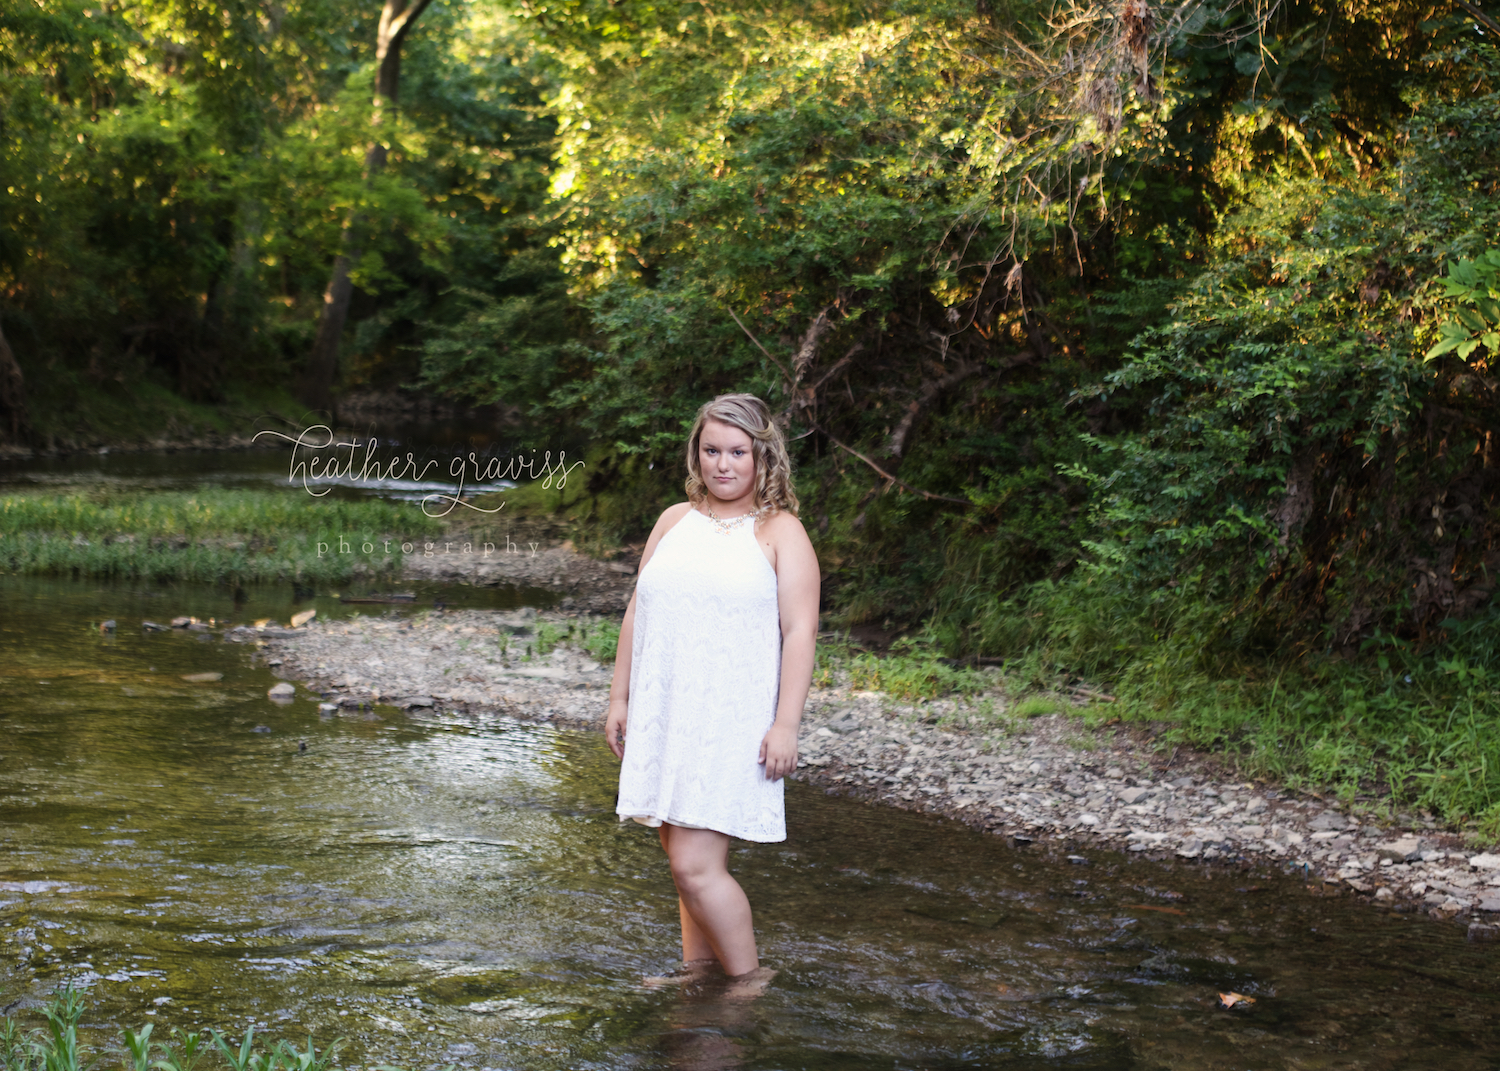 nashville middle tn senior portrait photographer 133.jpg